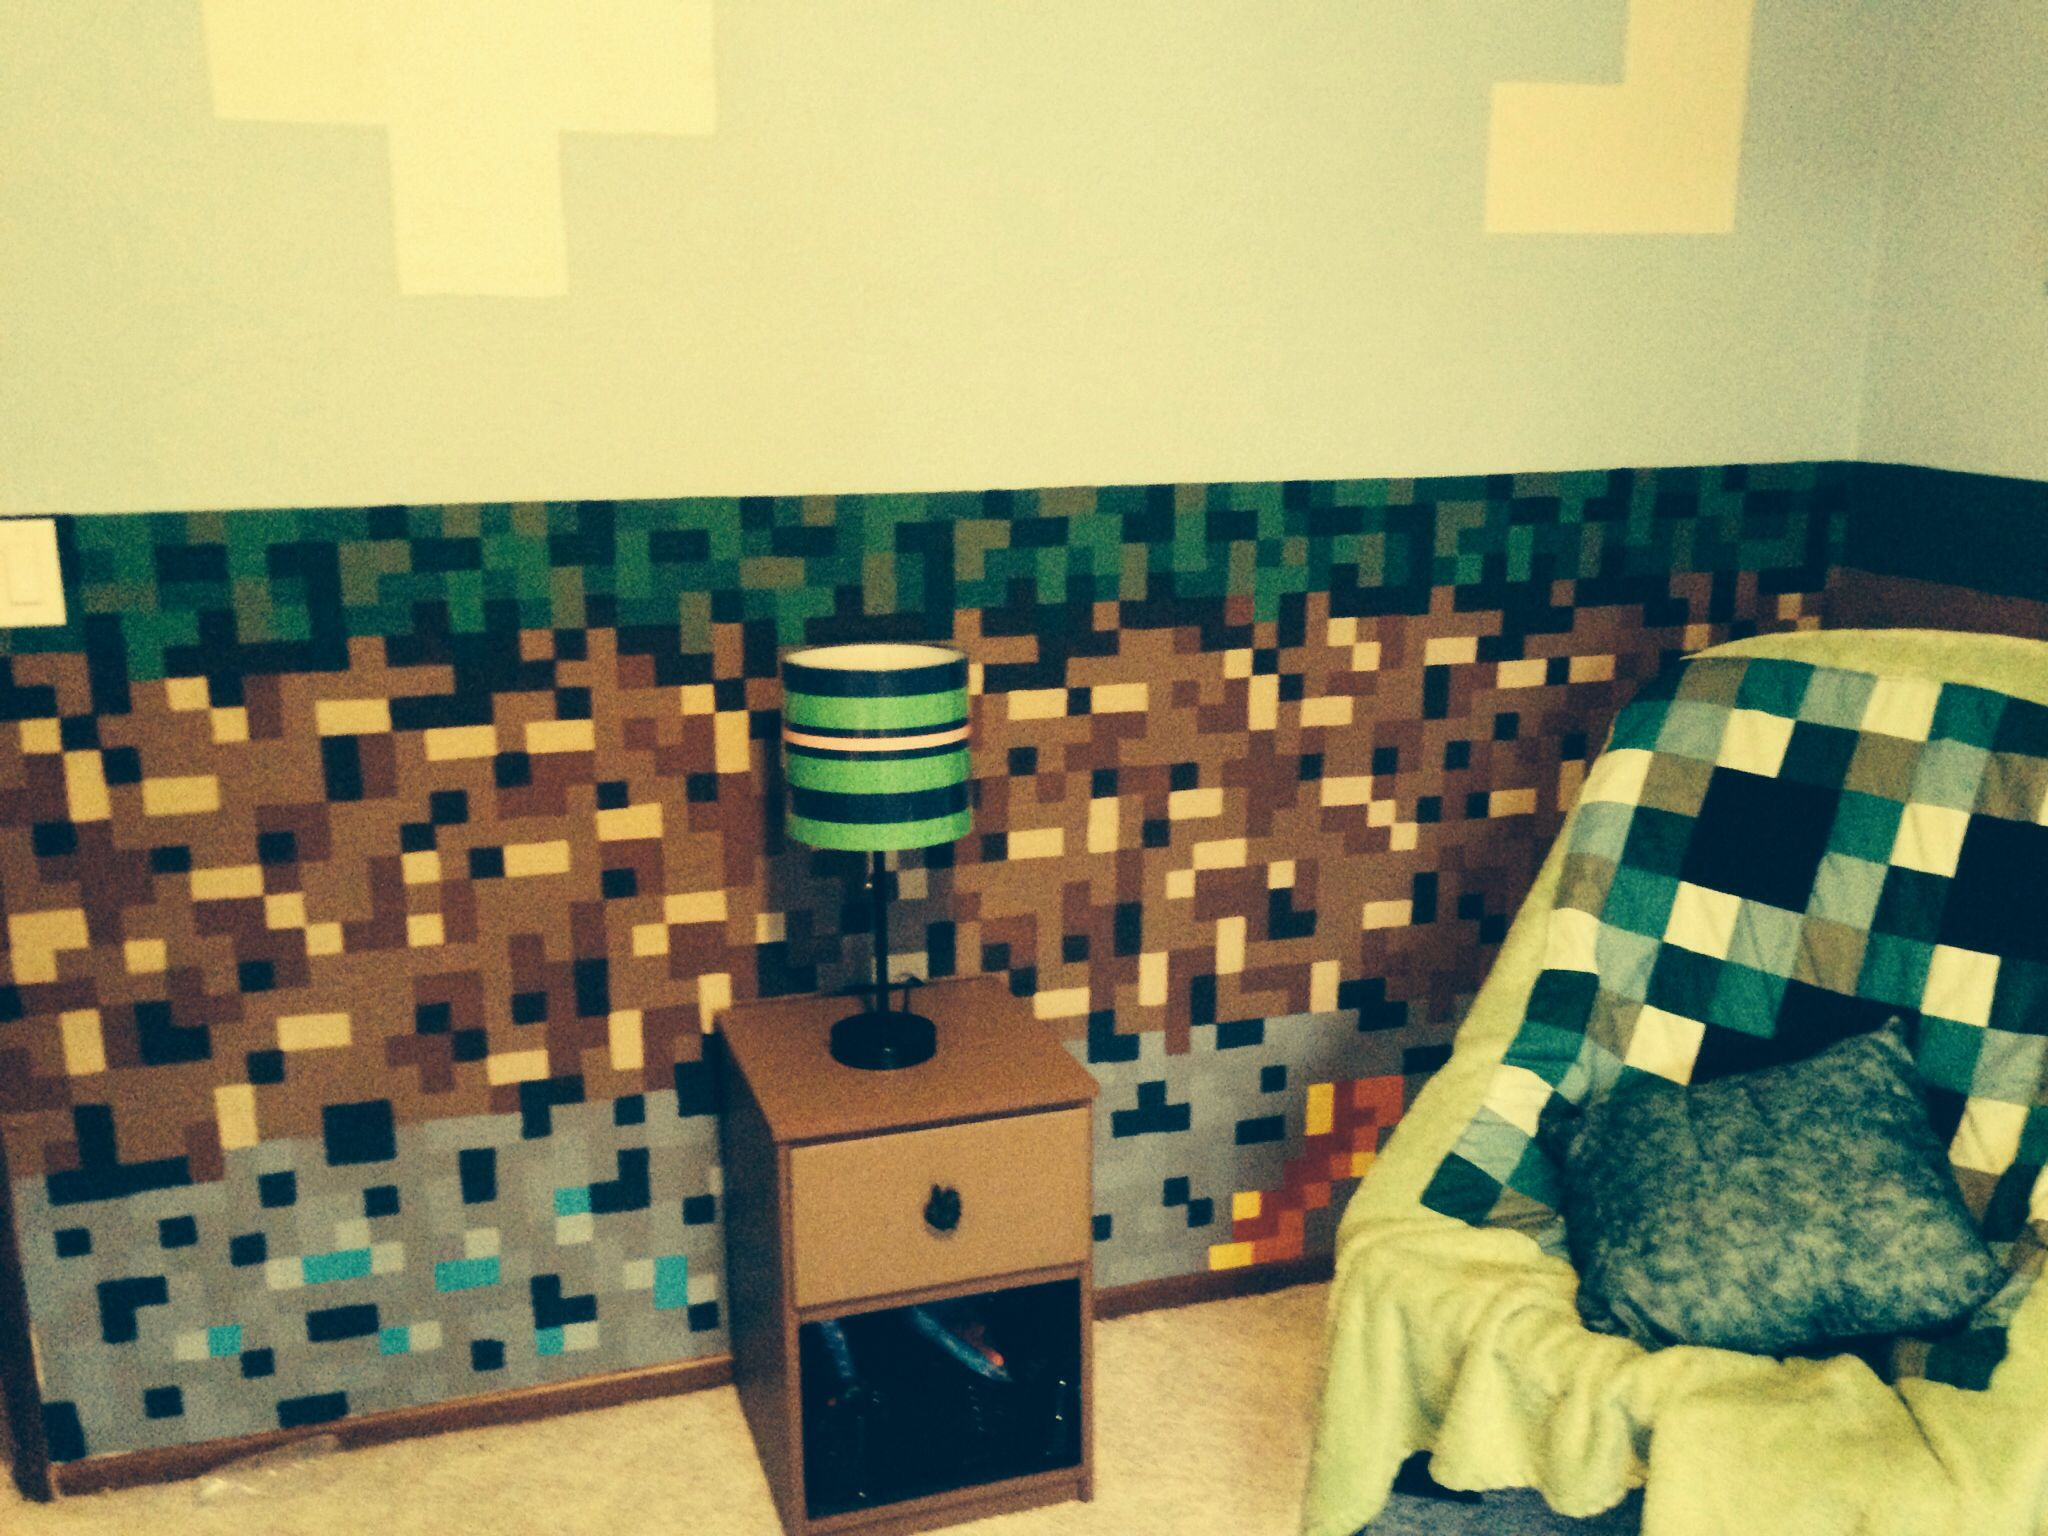 Minecraft Bedroom In Real Life 17 Best Images About Minecraft Bedroom On Pinterest Quilt